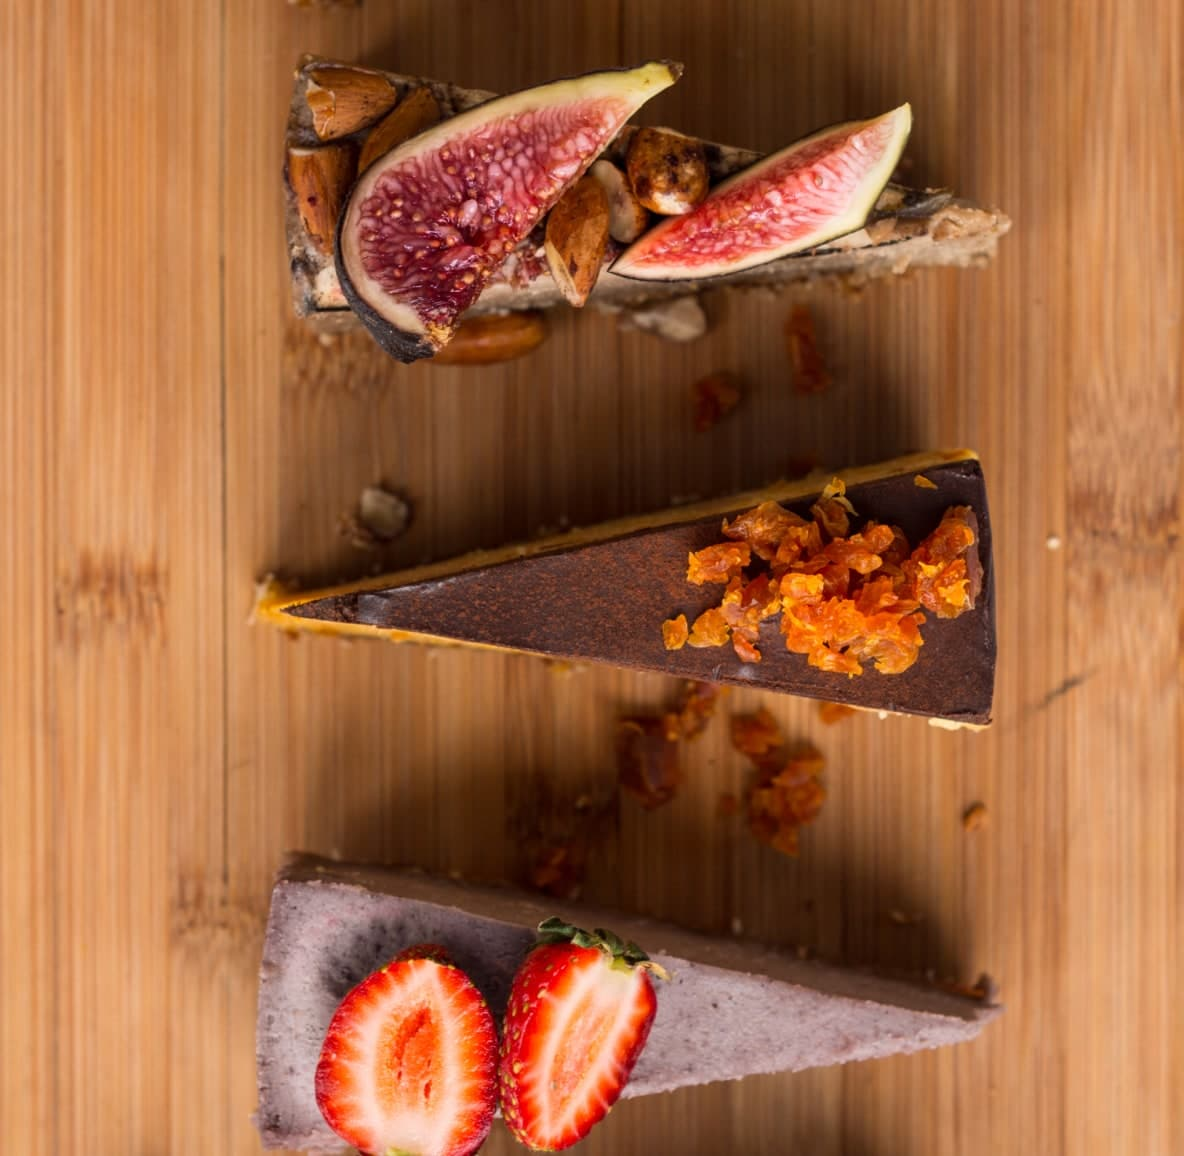 Three slices of different fruit tarts displayed neatly on a wooden board